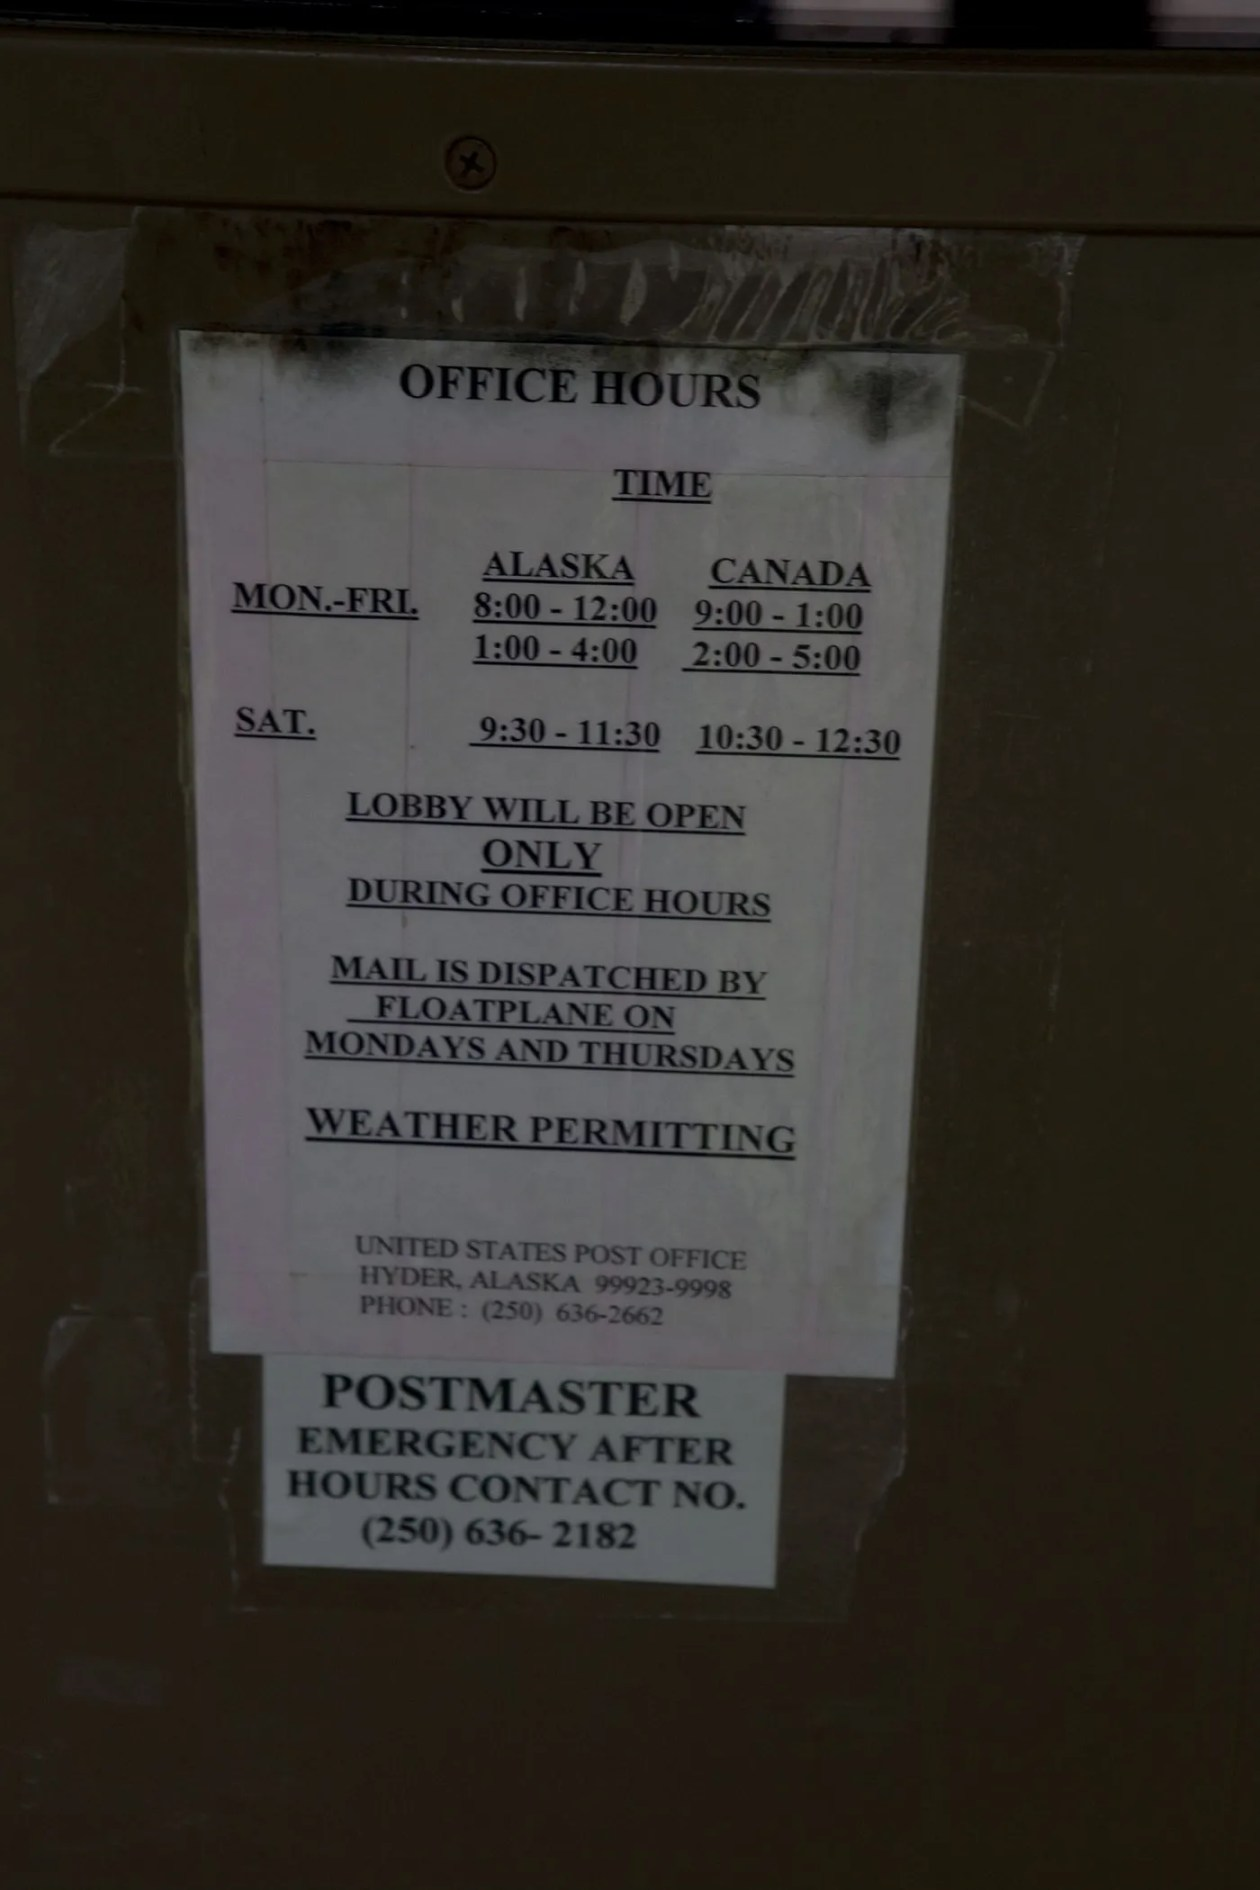 Mail is dispatched by floatplane sign at the Hyder, Alaska Post Office.